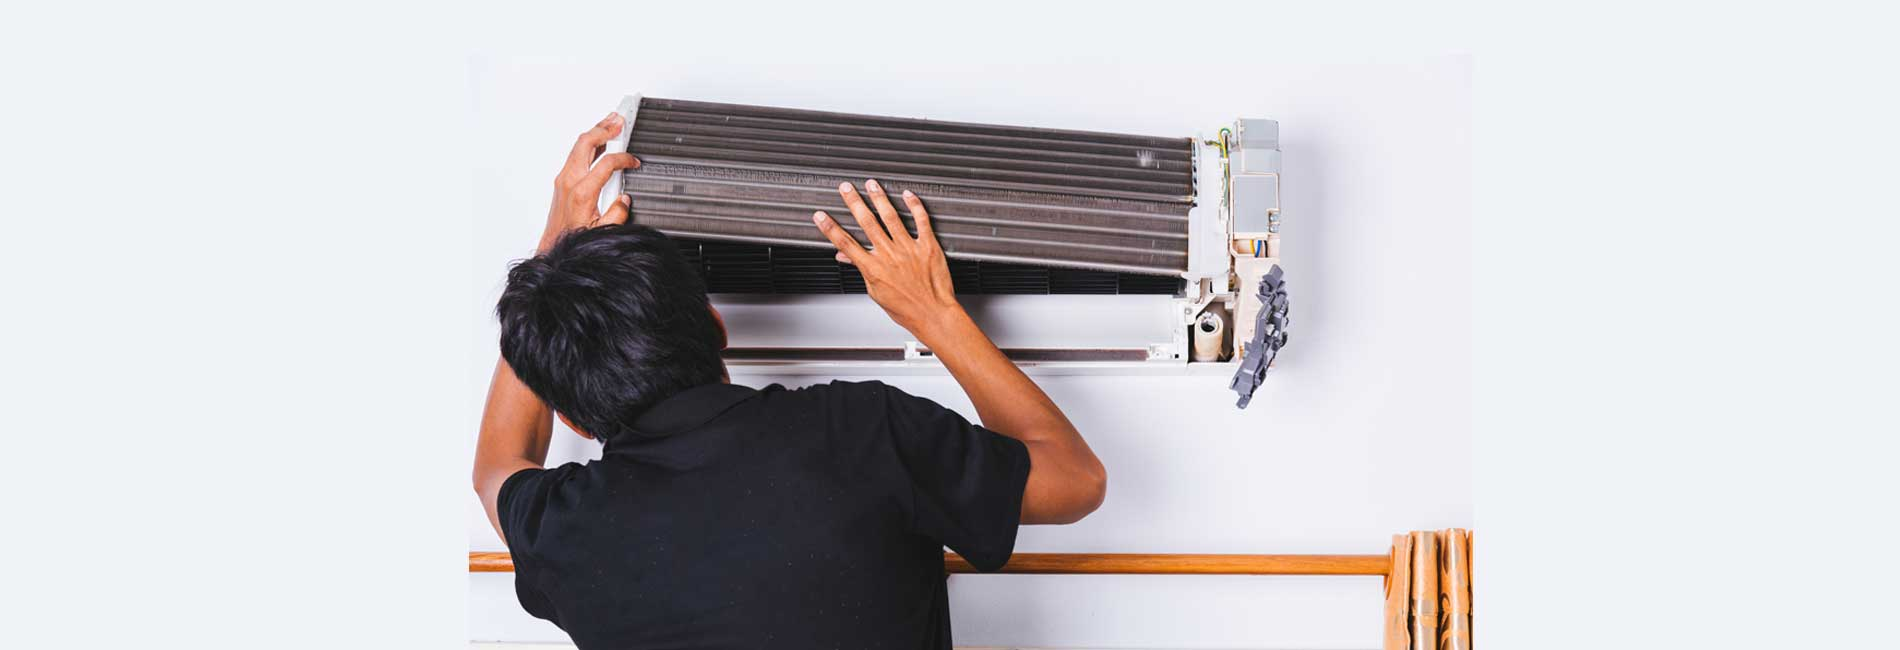 Panasonic AC Repair in kandanchavadi